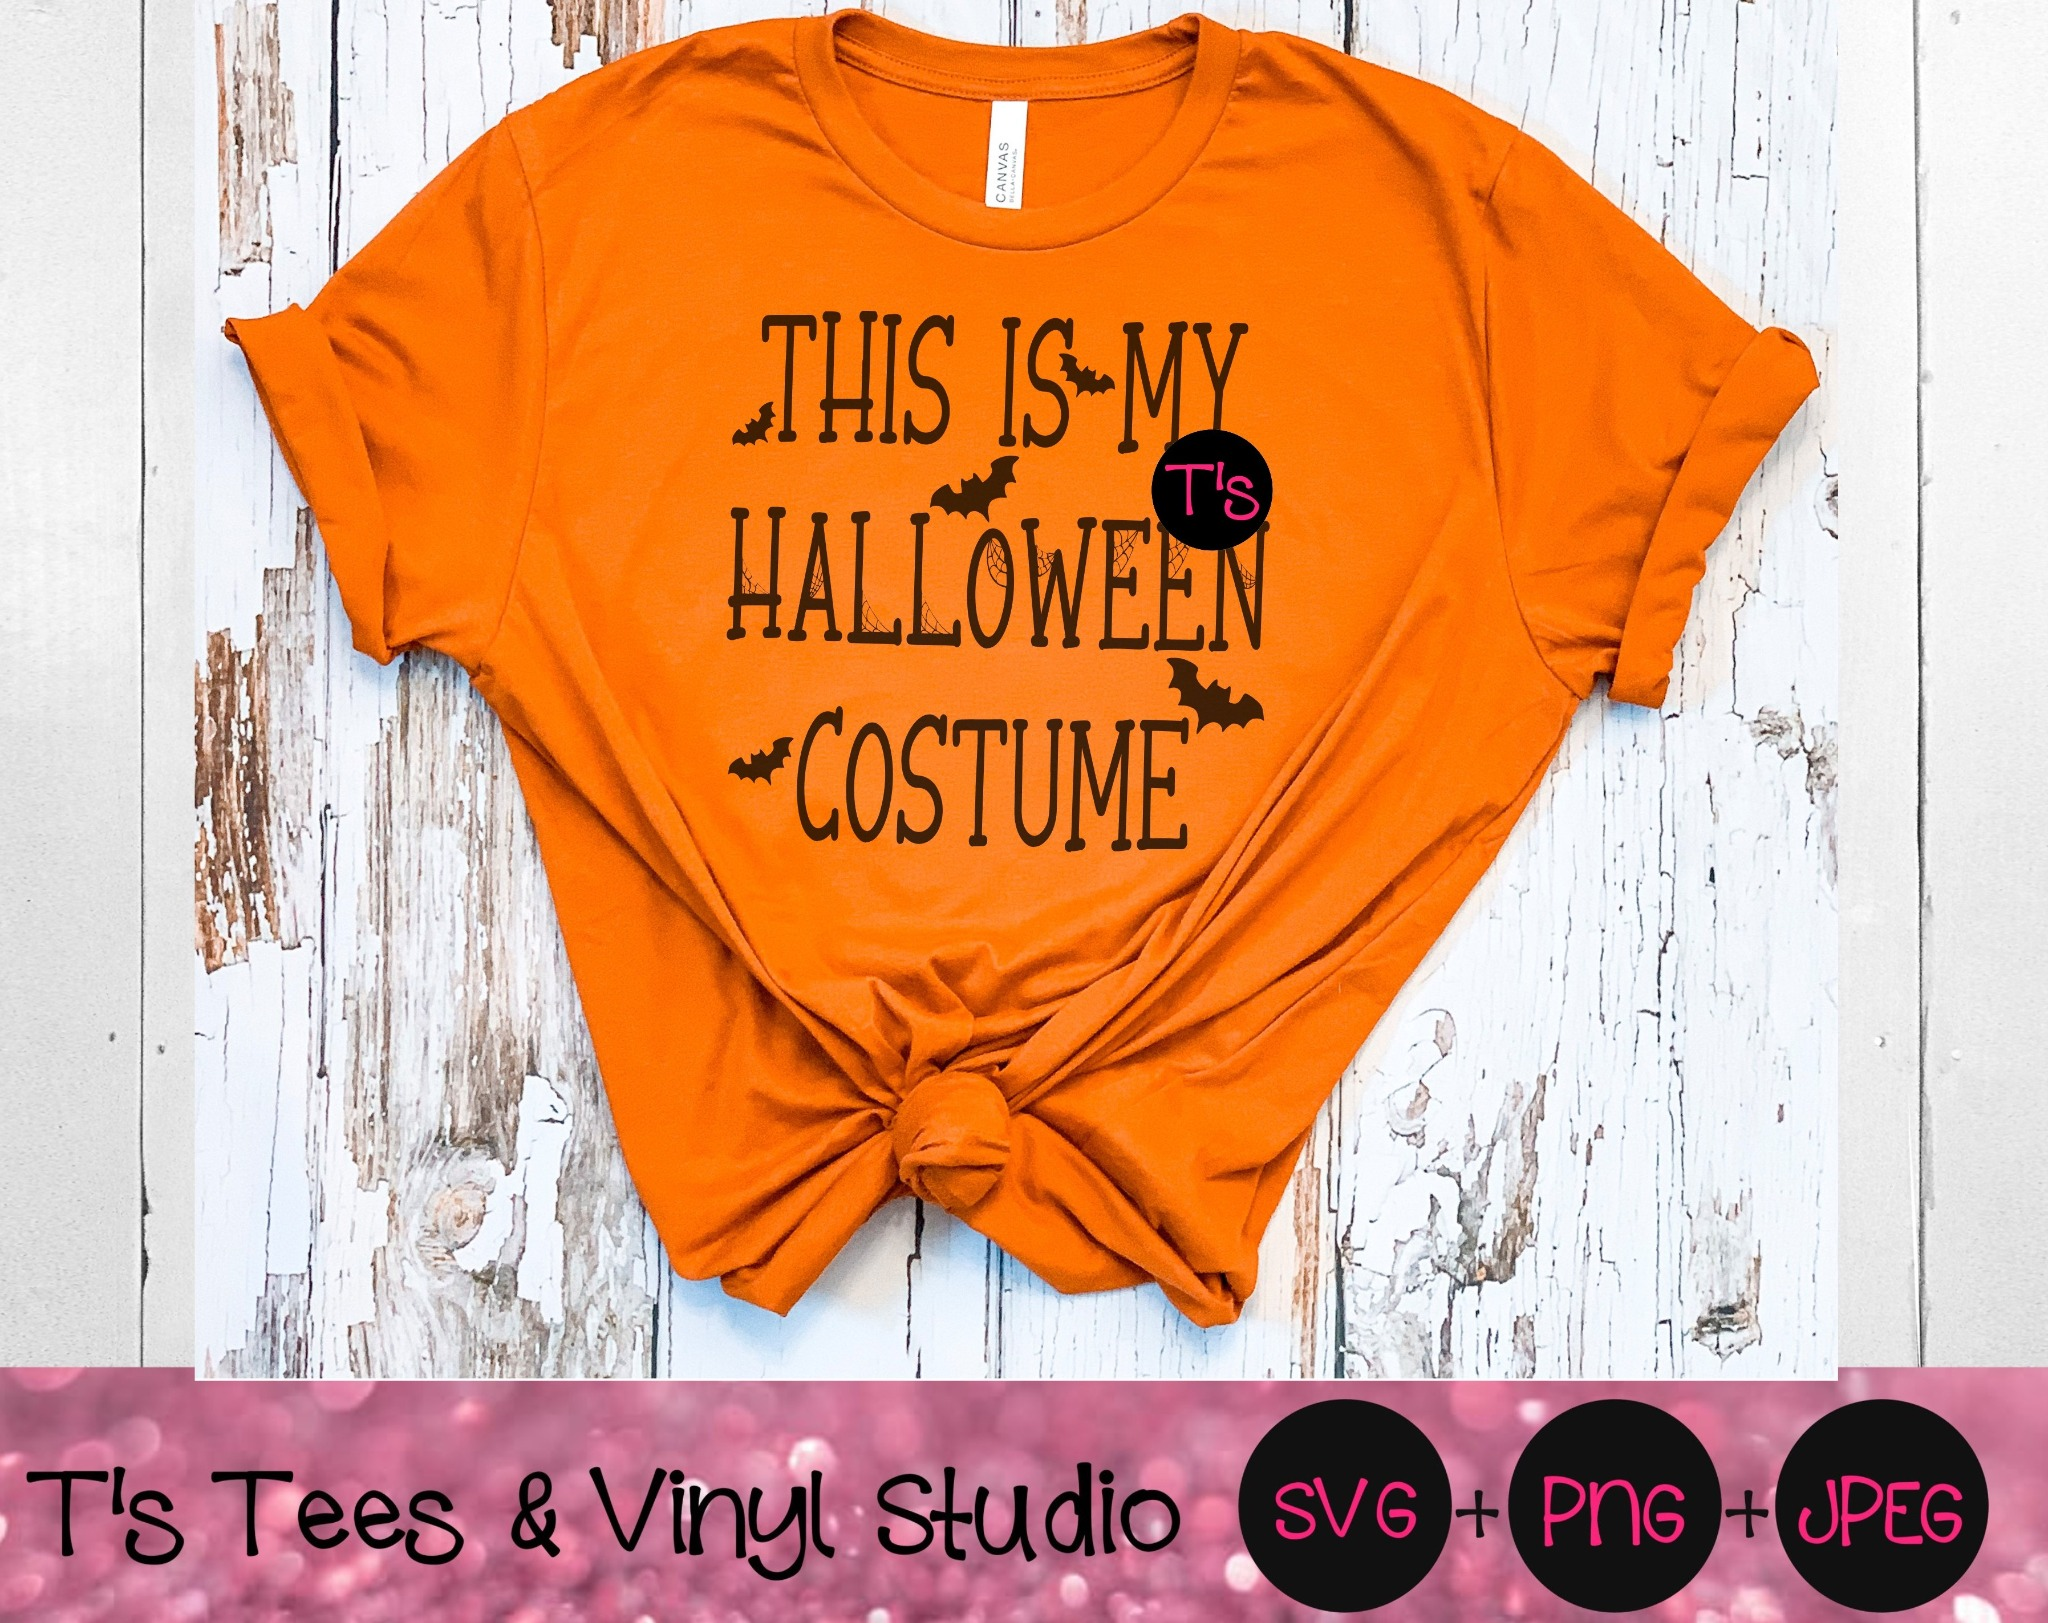 Halloween SVG, Halloween Costume Png, This Is My Halloween Costume, Dress Up Svg, Fall, Autumn, Part